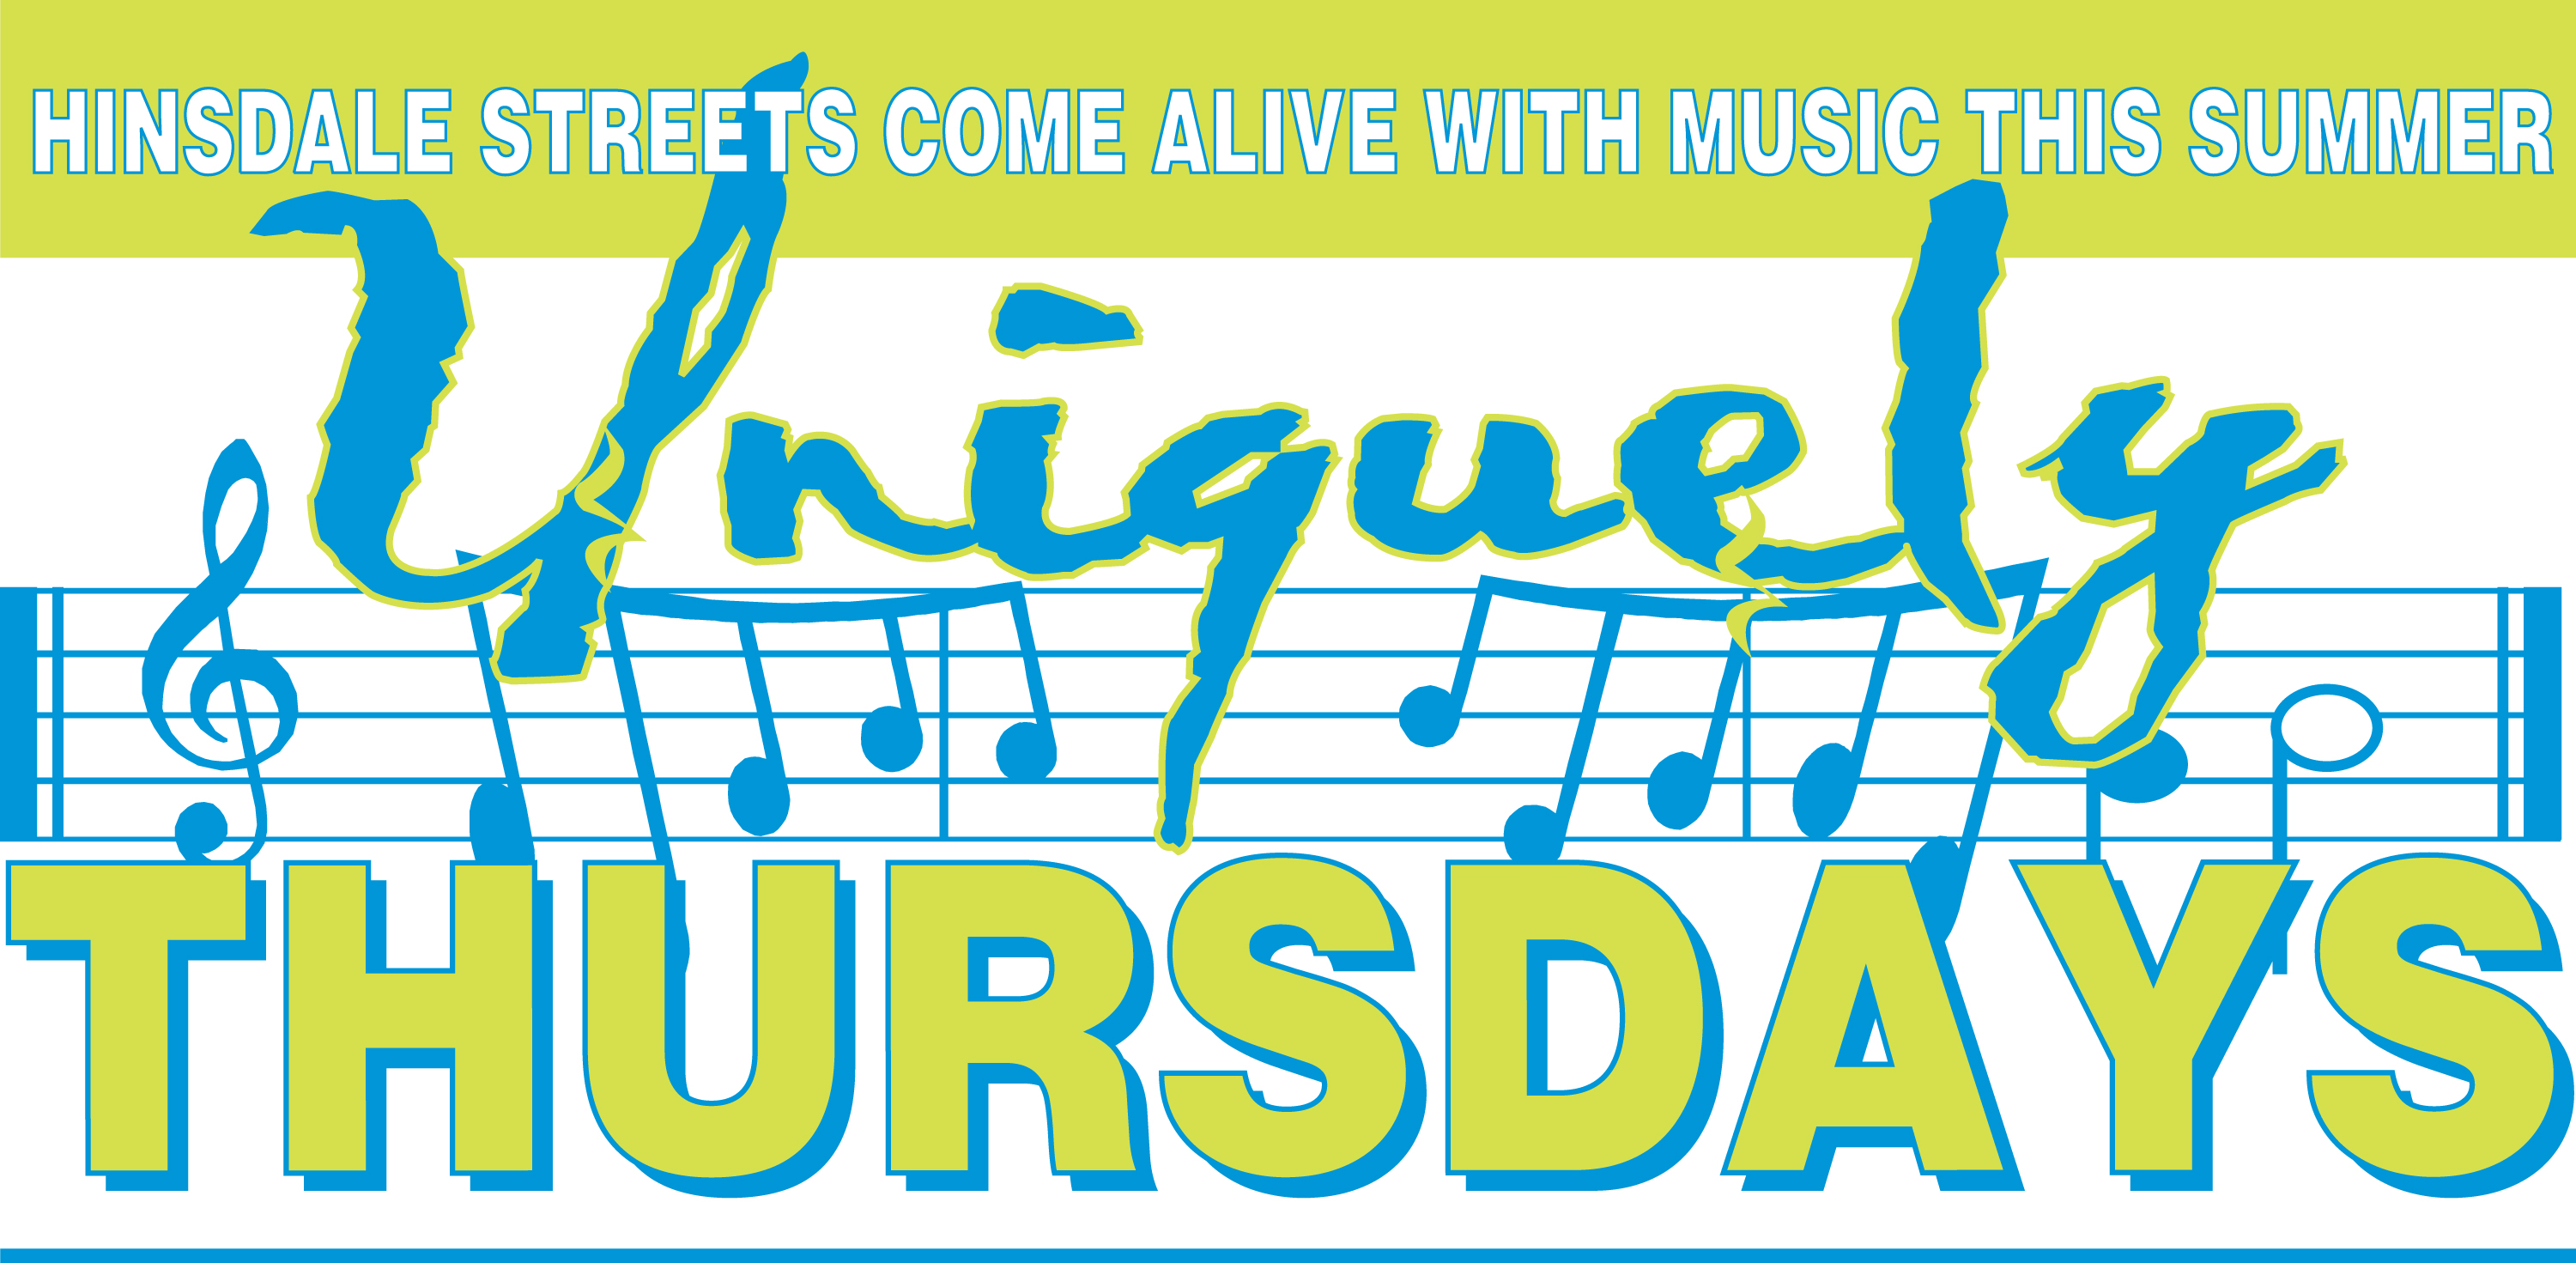 Click here for http://www.hinsdalechamber.com/pages/UniquelyThursdays